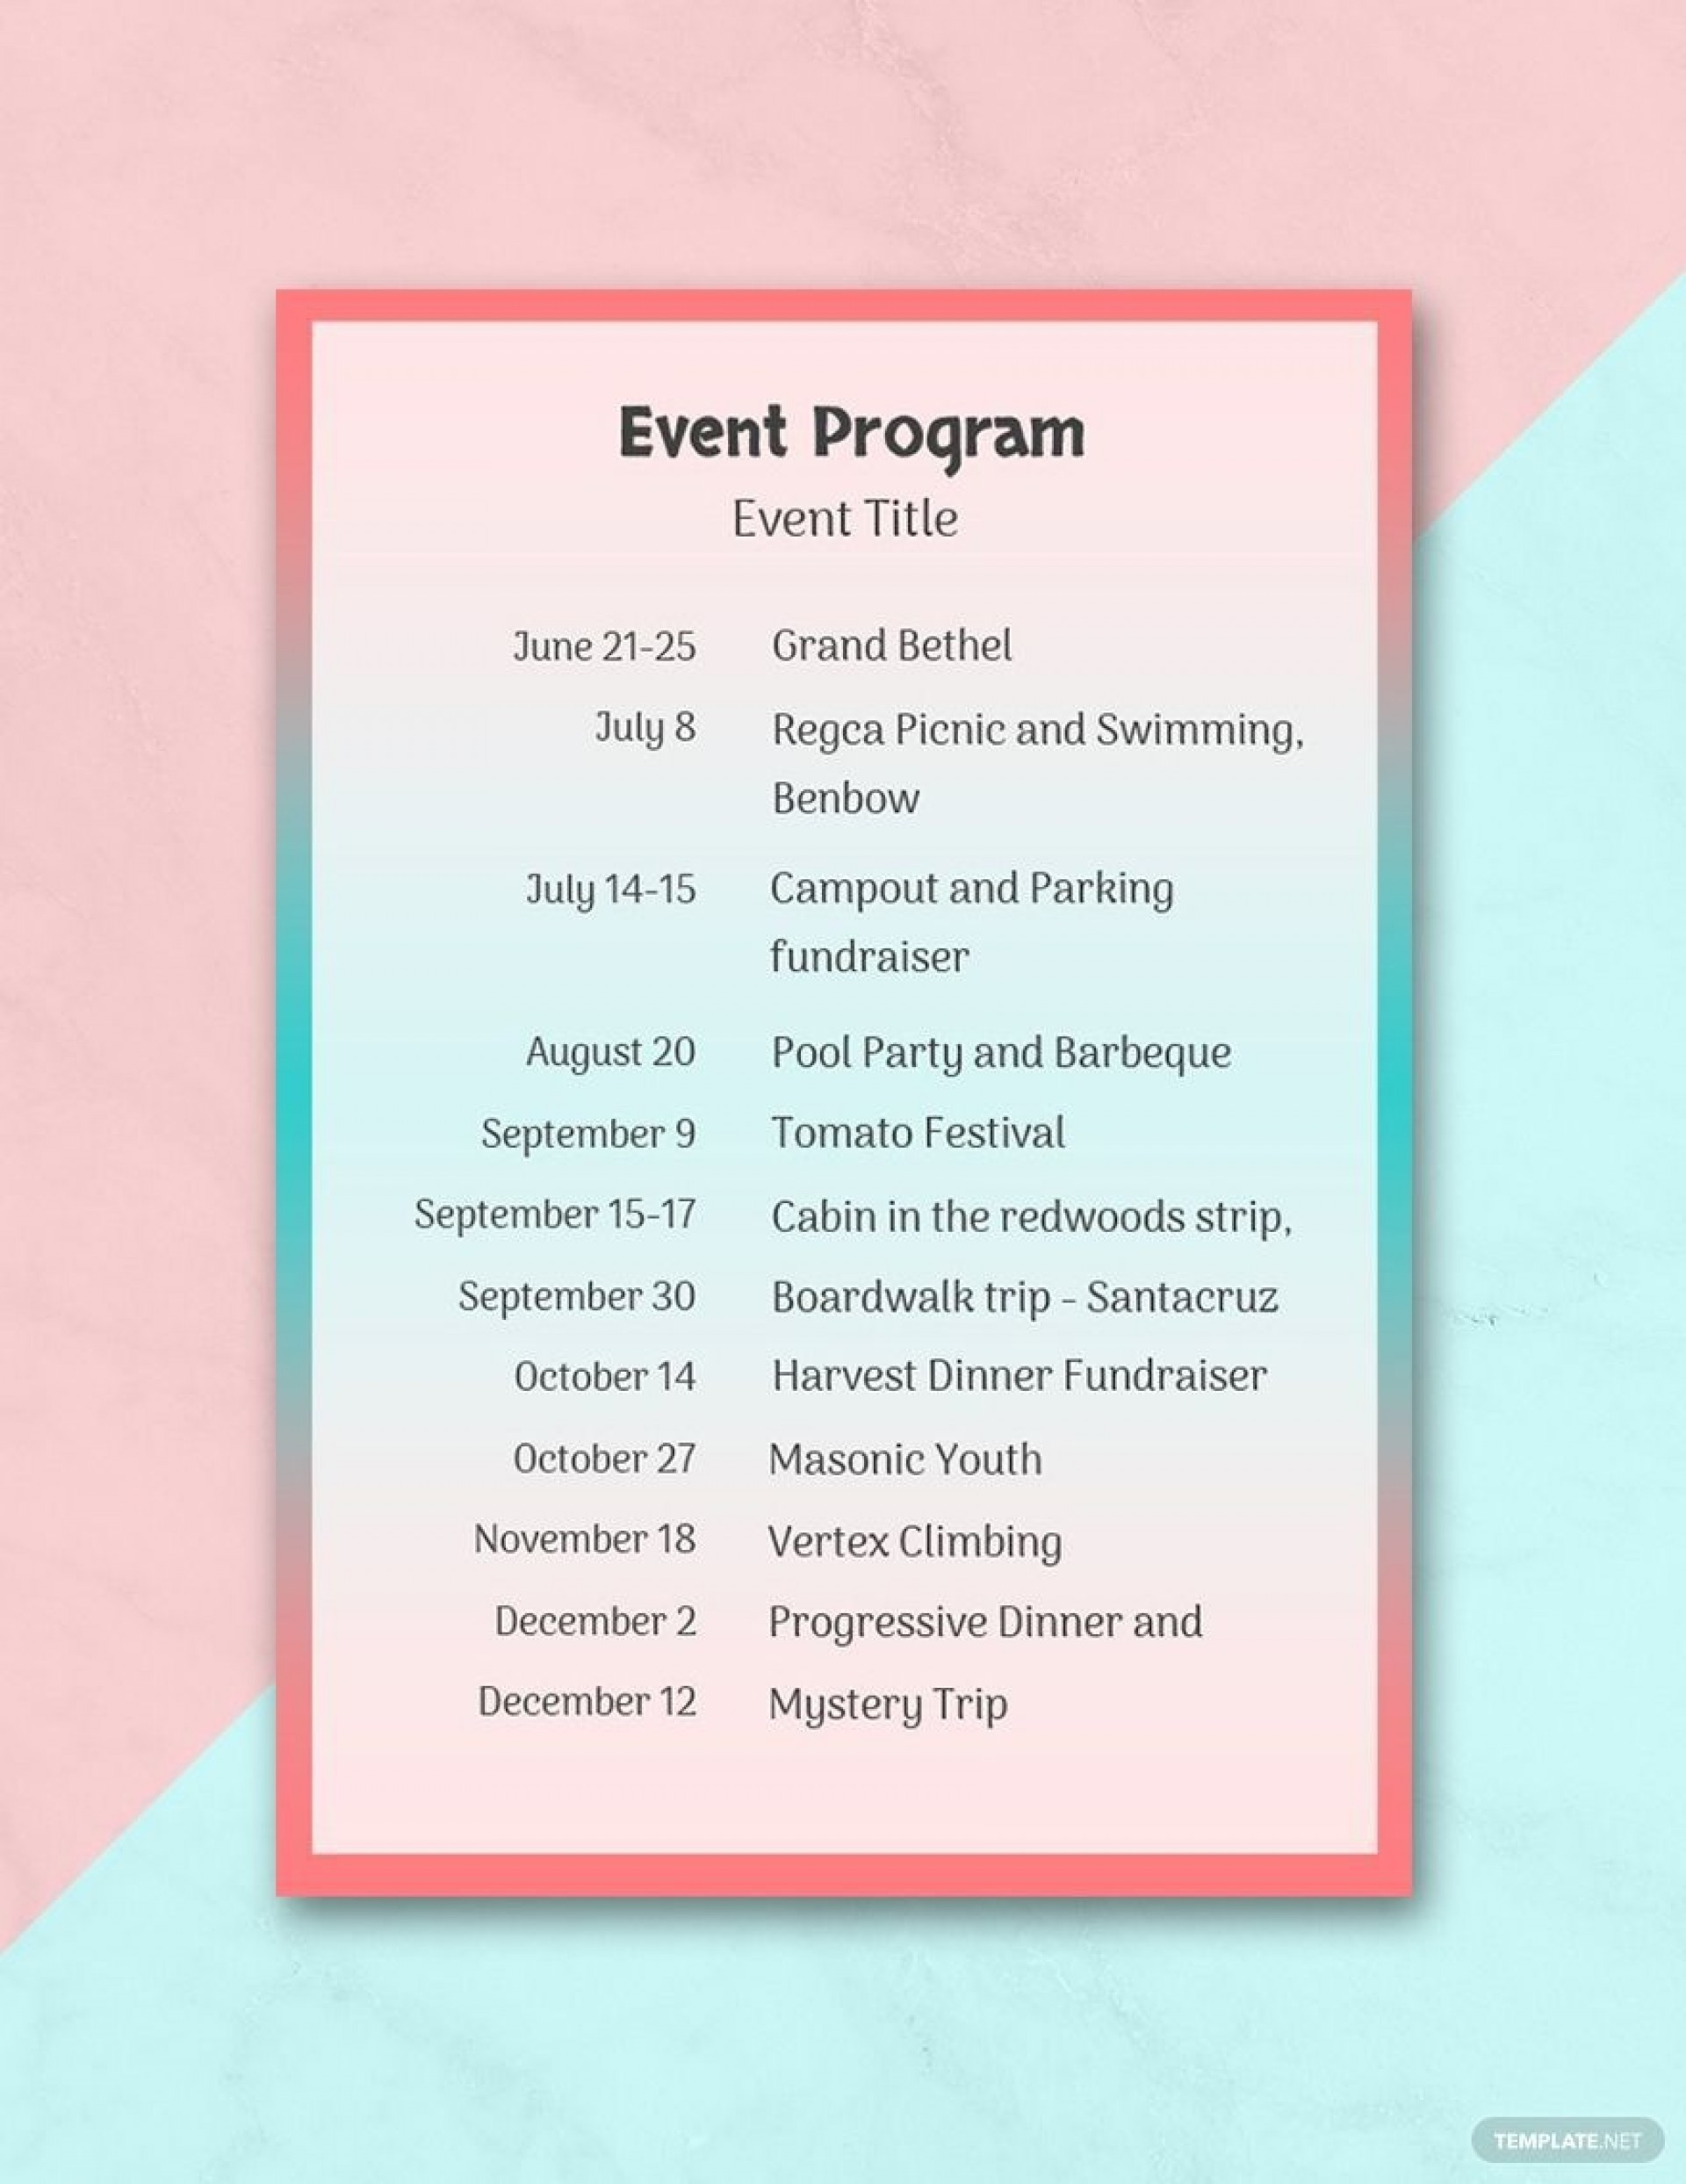 002 Unusual Free Event Program Template High Definition  Schedule Psd Word1920